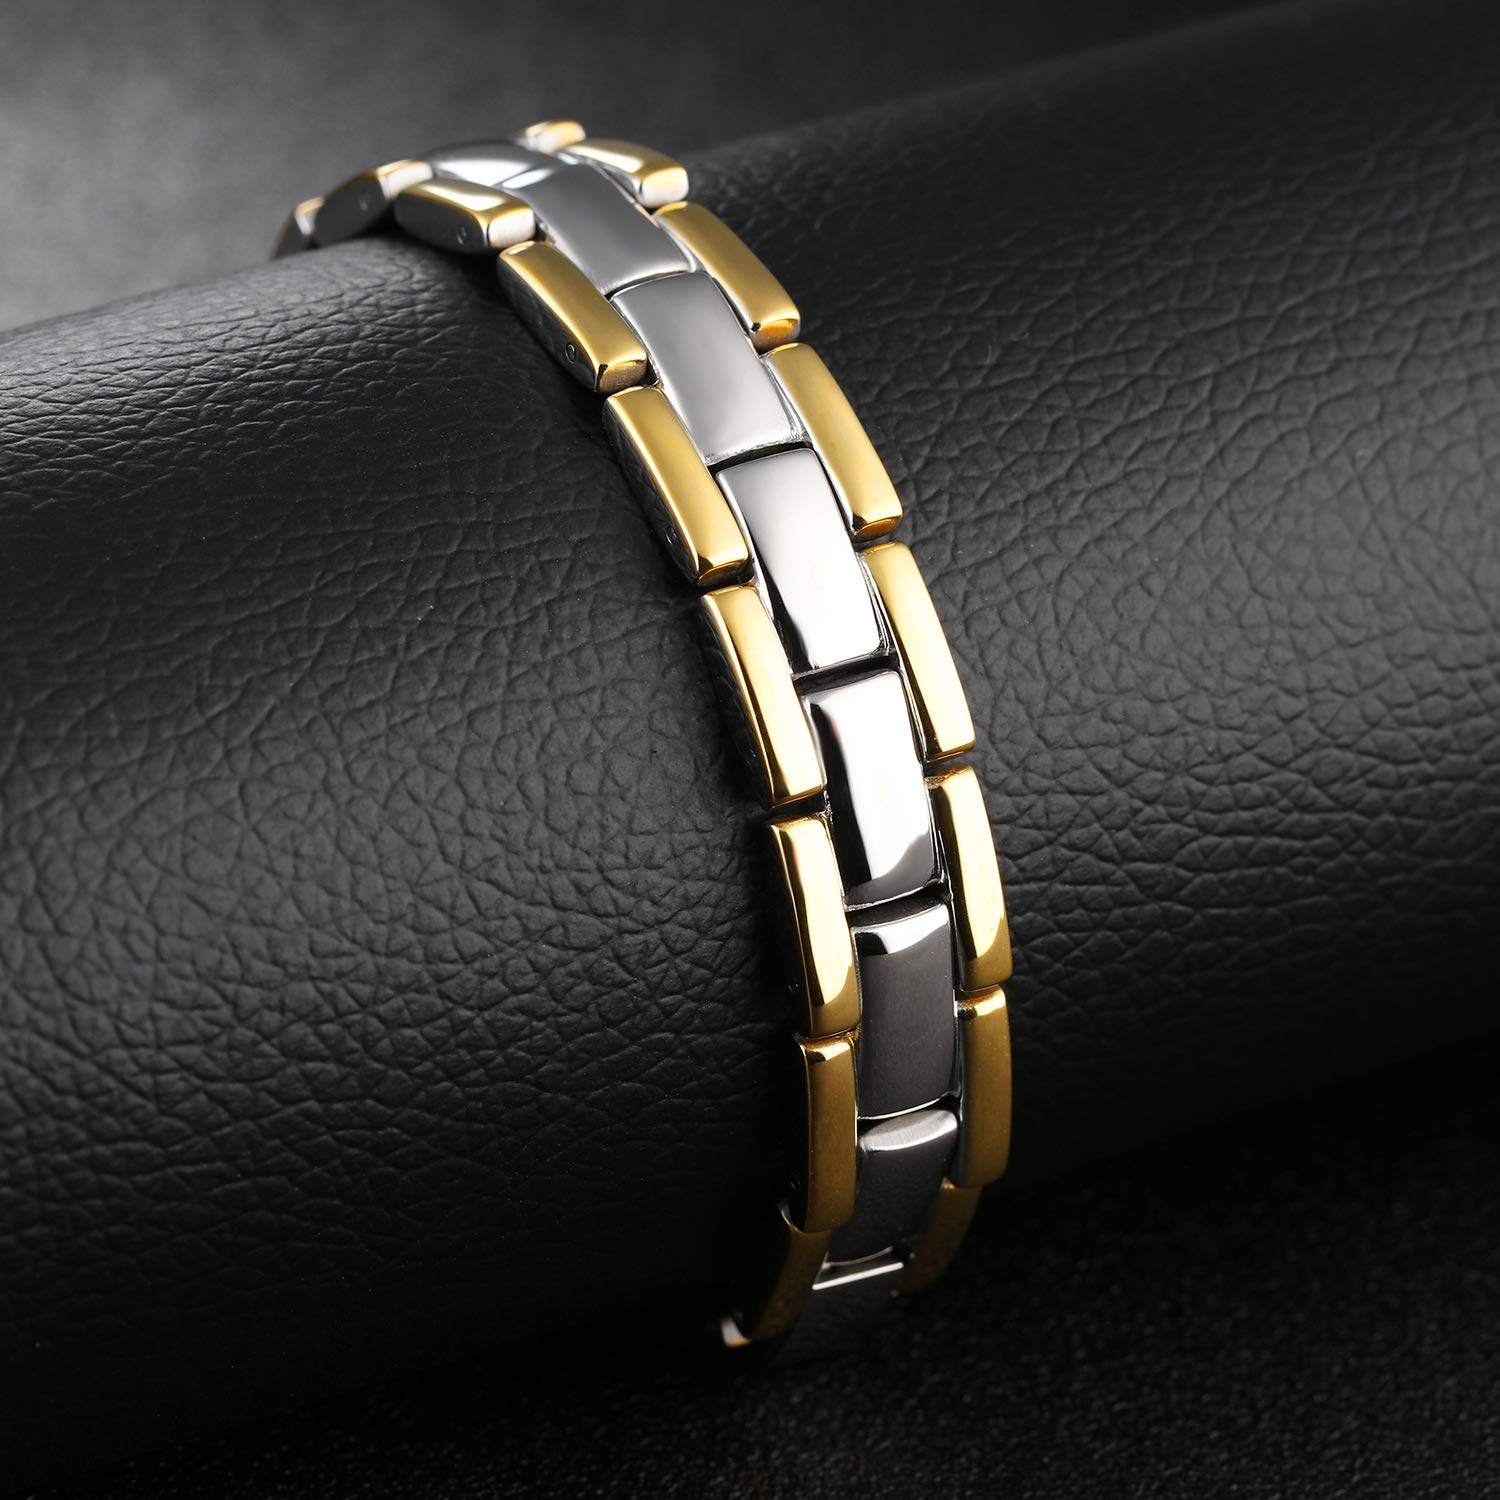 Jeracol Magnetic Bracelet Magnetic Therapy Bracelets Pain Relief for Arthritis and Carpal Tunnel Health Care Gift for Men and Womens Wristband Adjustable with Remove Tool & Gift Box.